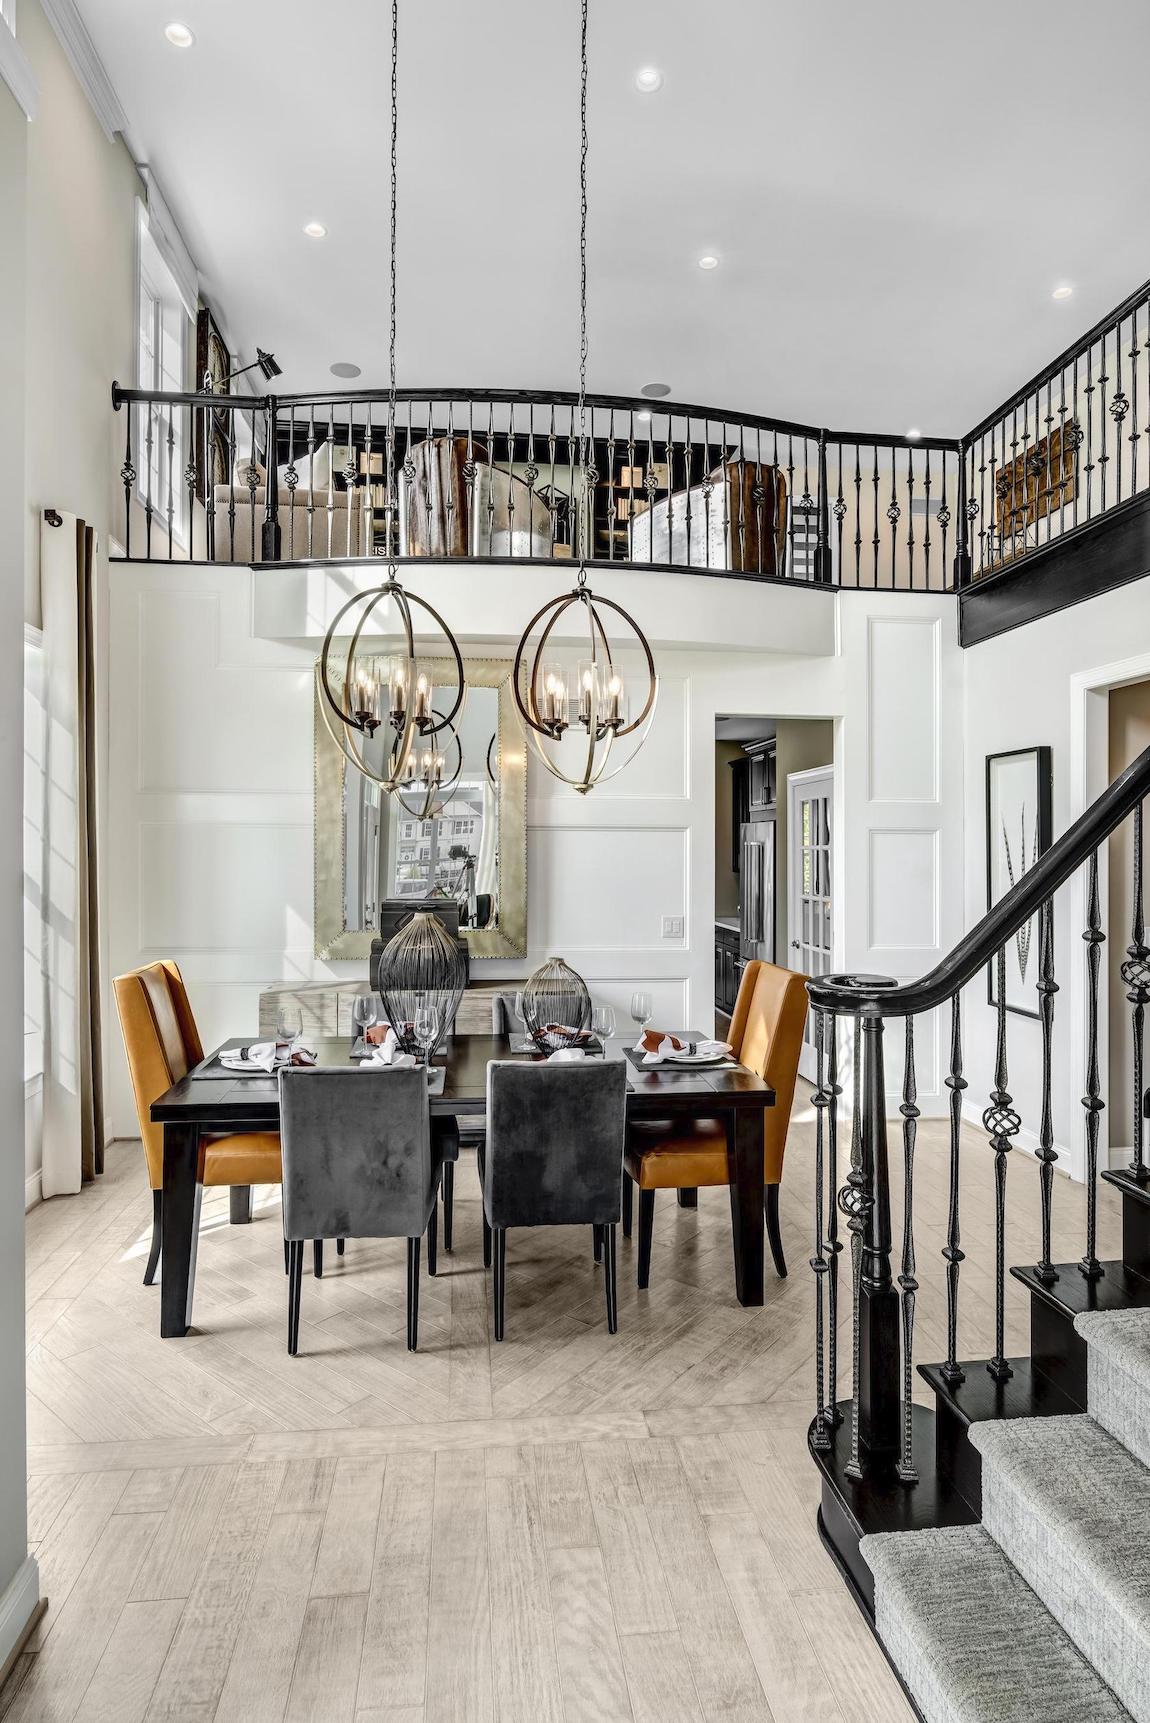 Matching metal caged chandeliers in the dining room